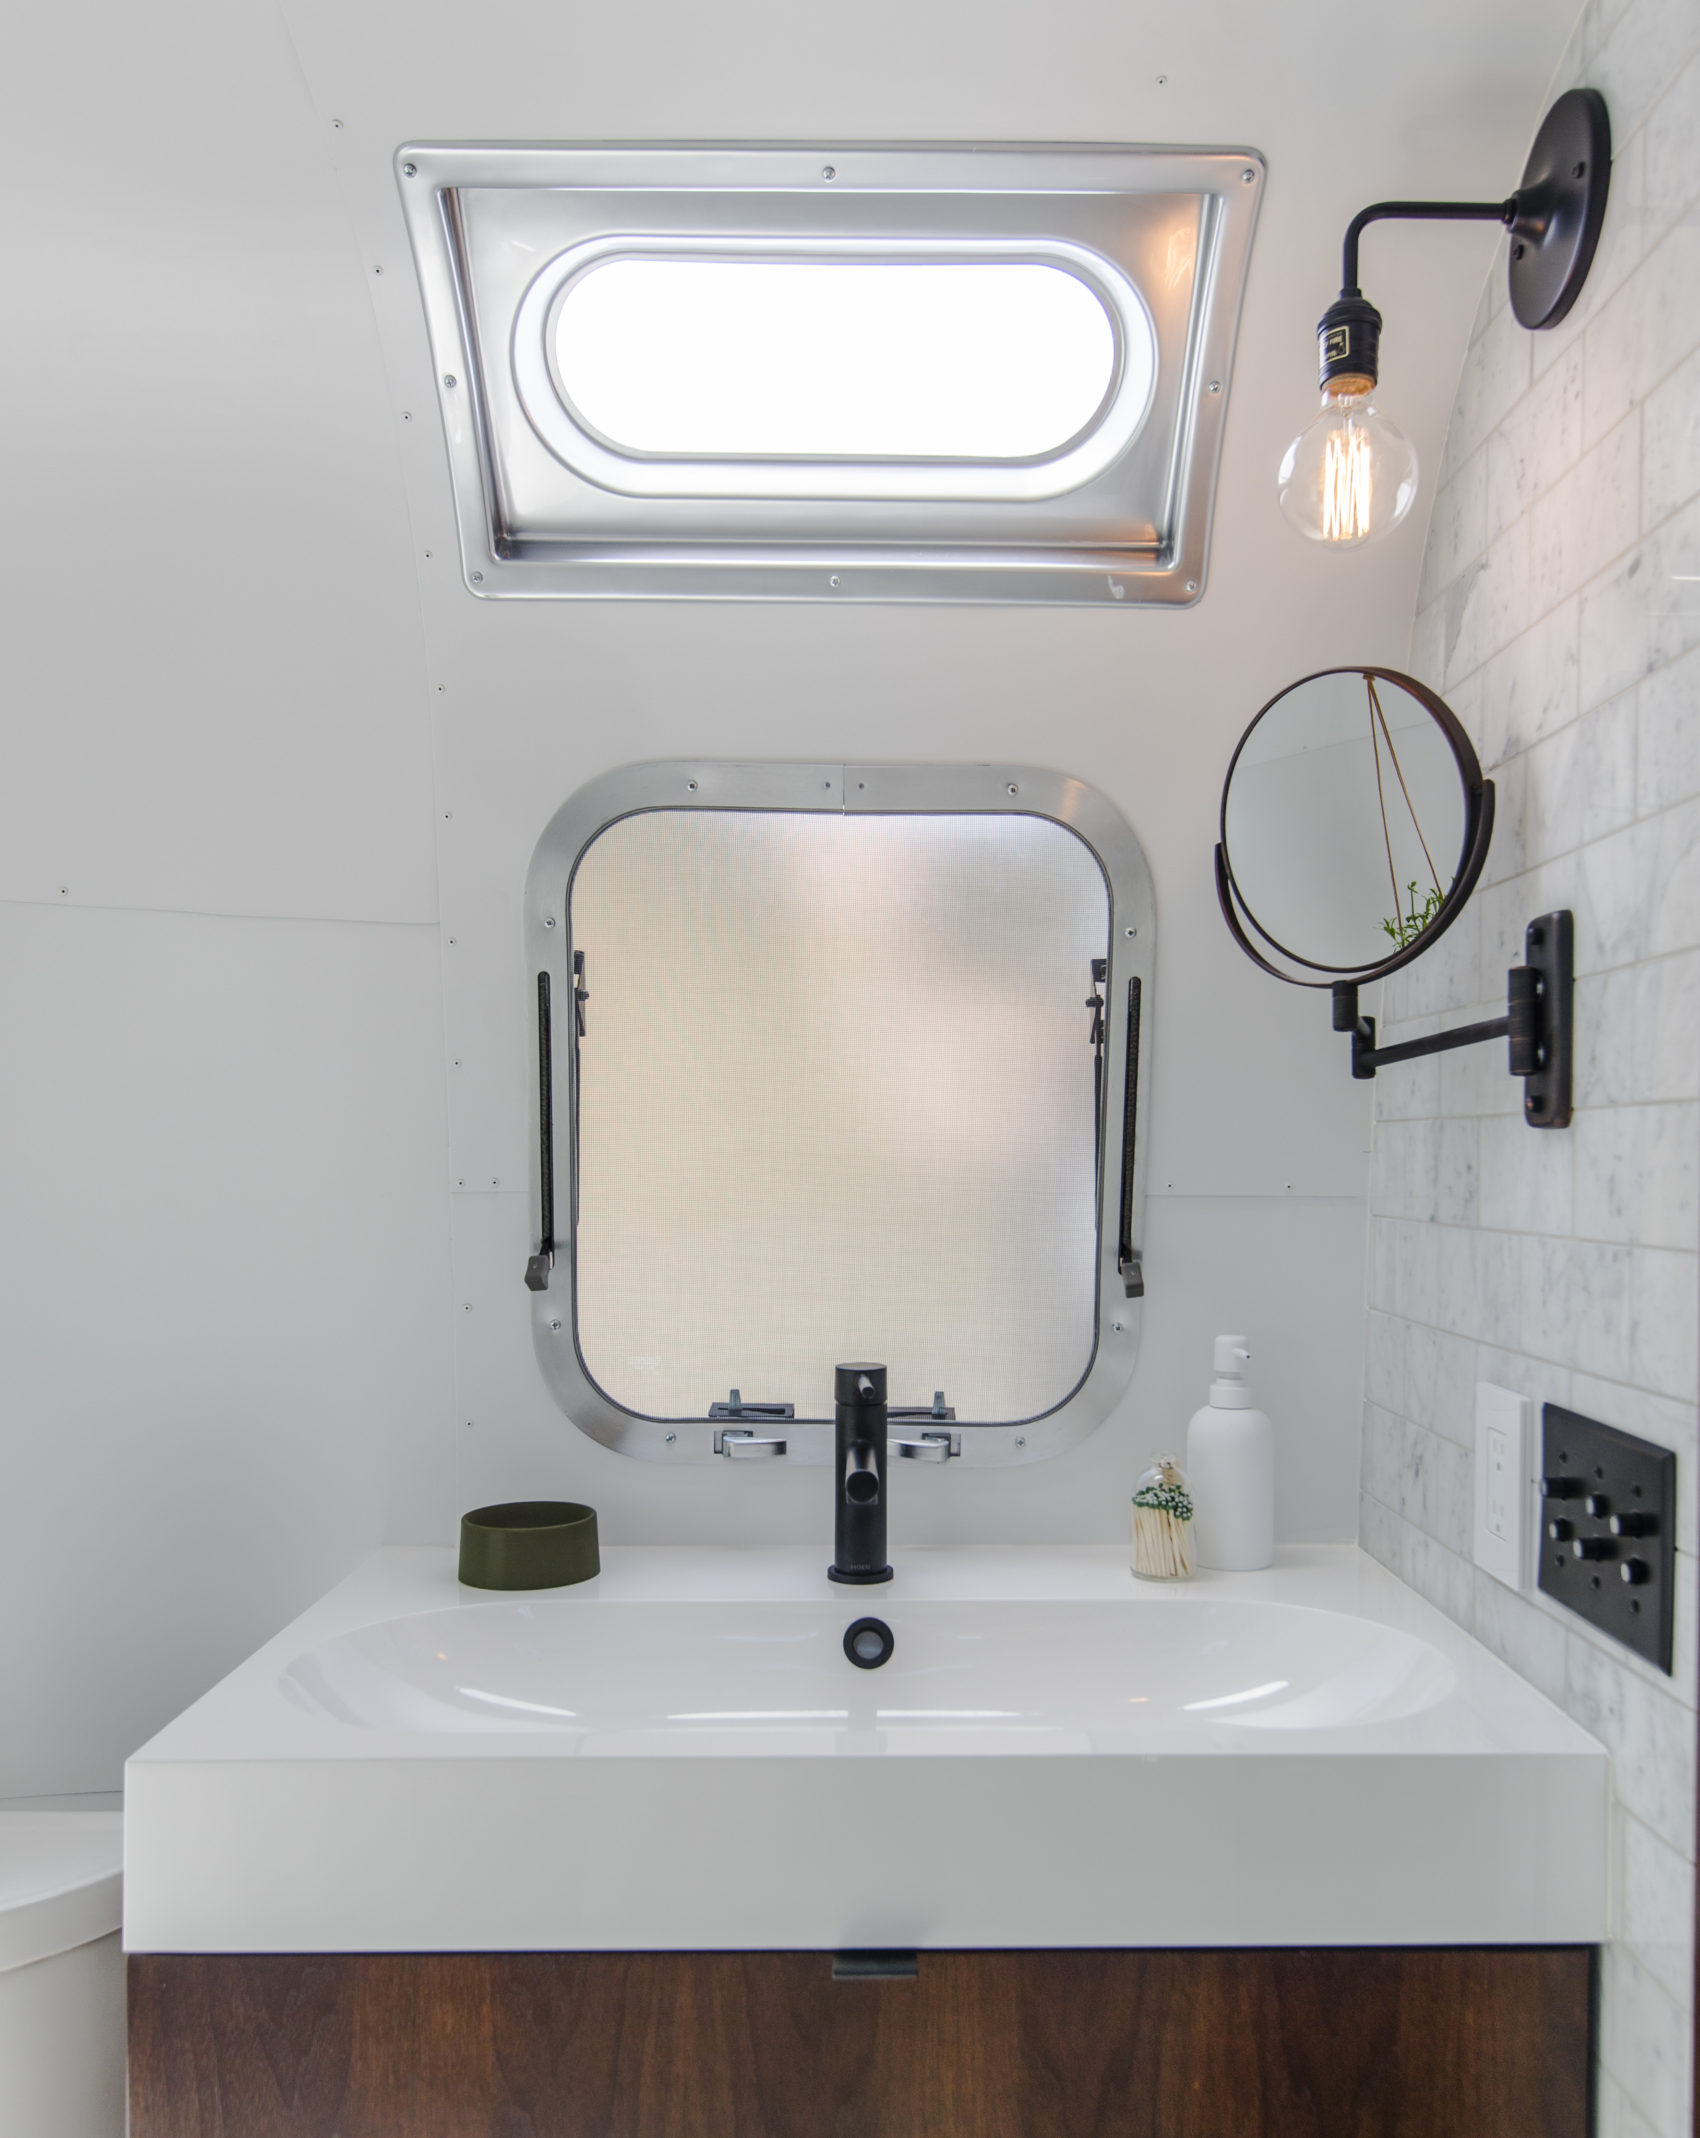 Autopark Airstream trailer bathroom